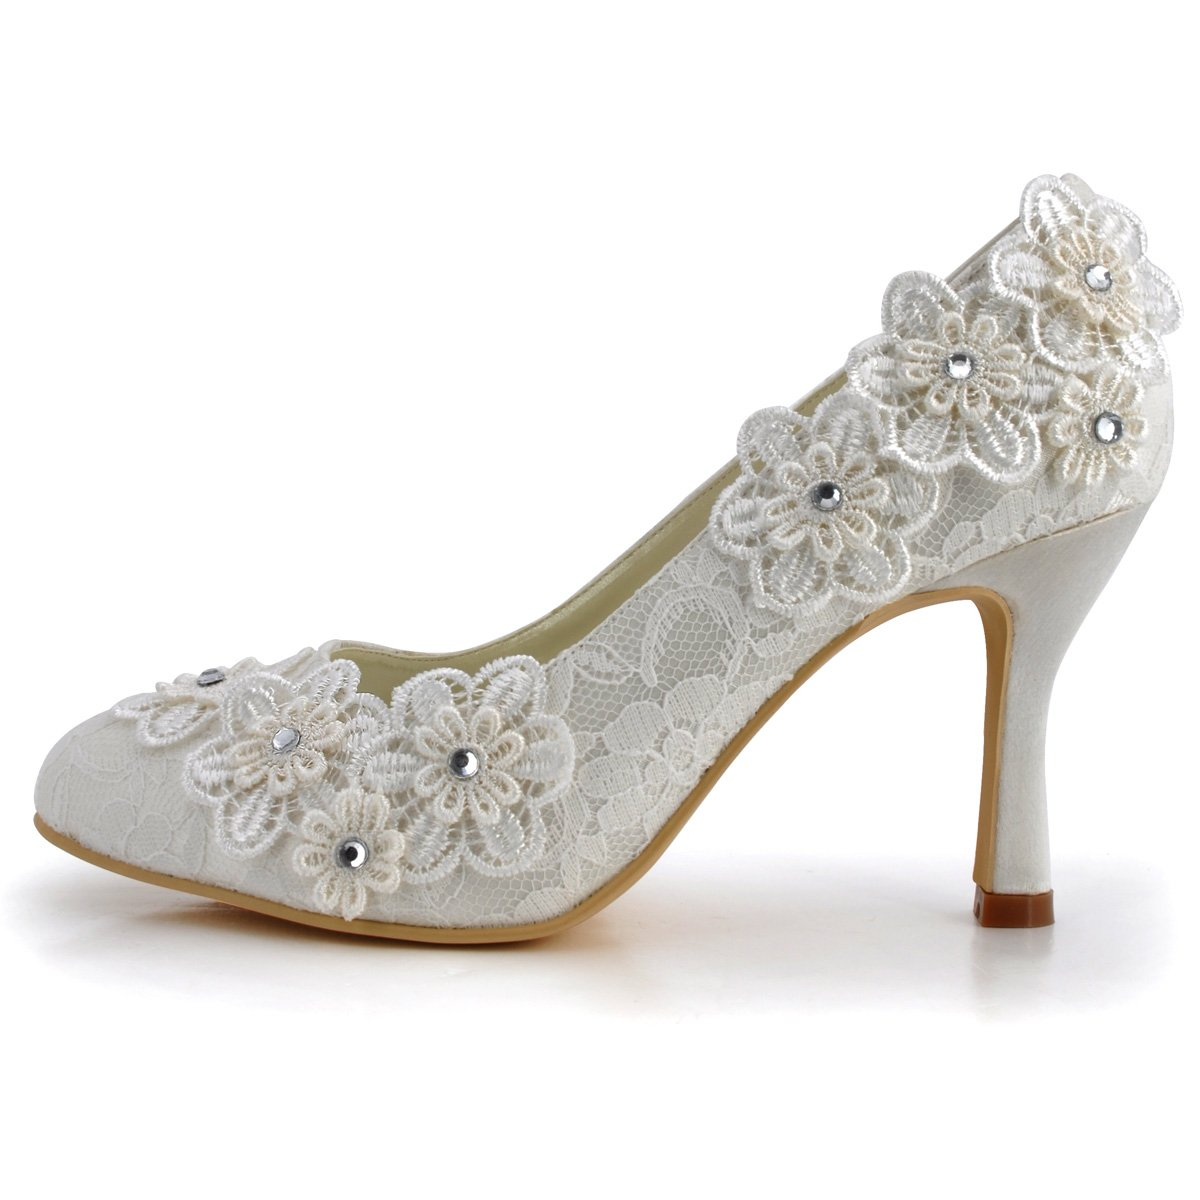 ElegantPark Women Vintage Closed Toe Pumps High Heel Flowers Lace Wedding Bridal Dress Shoes 1